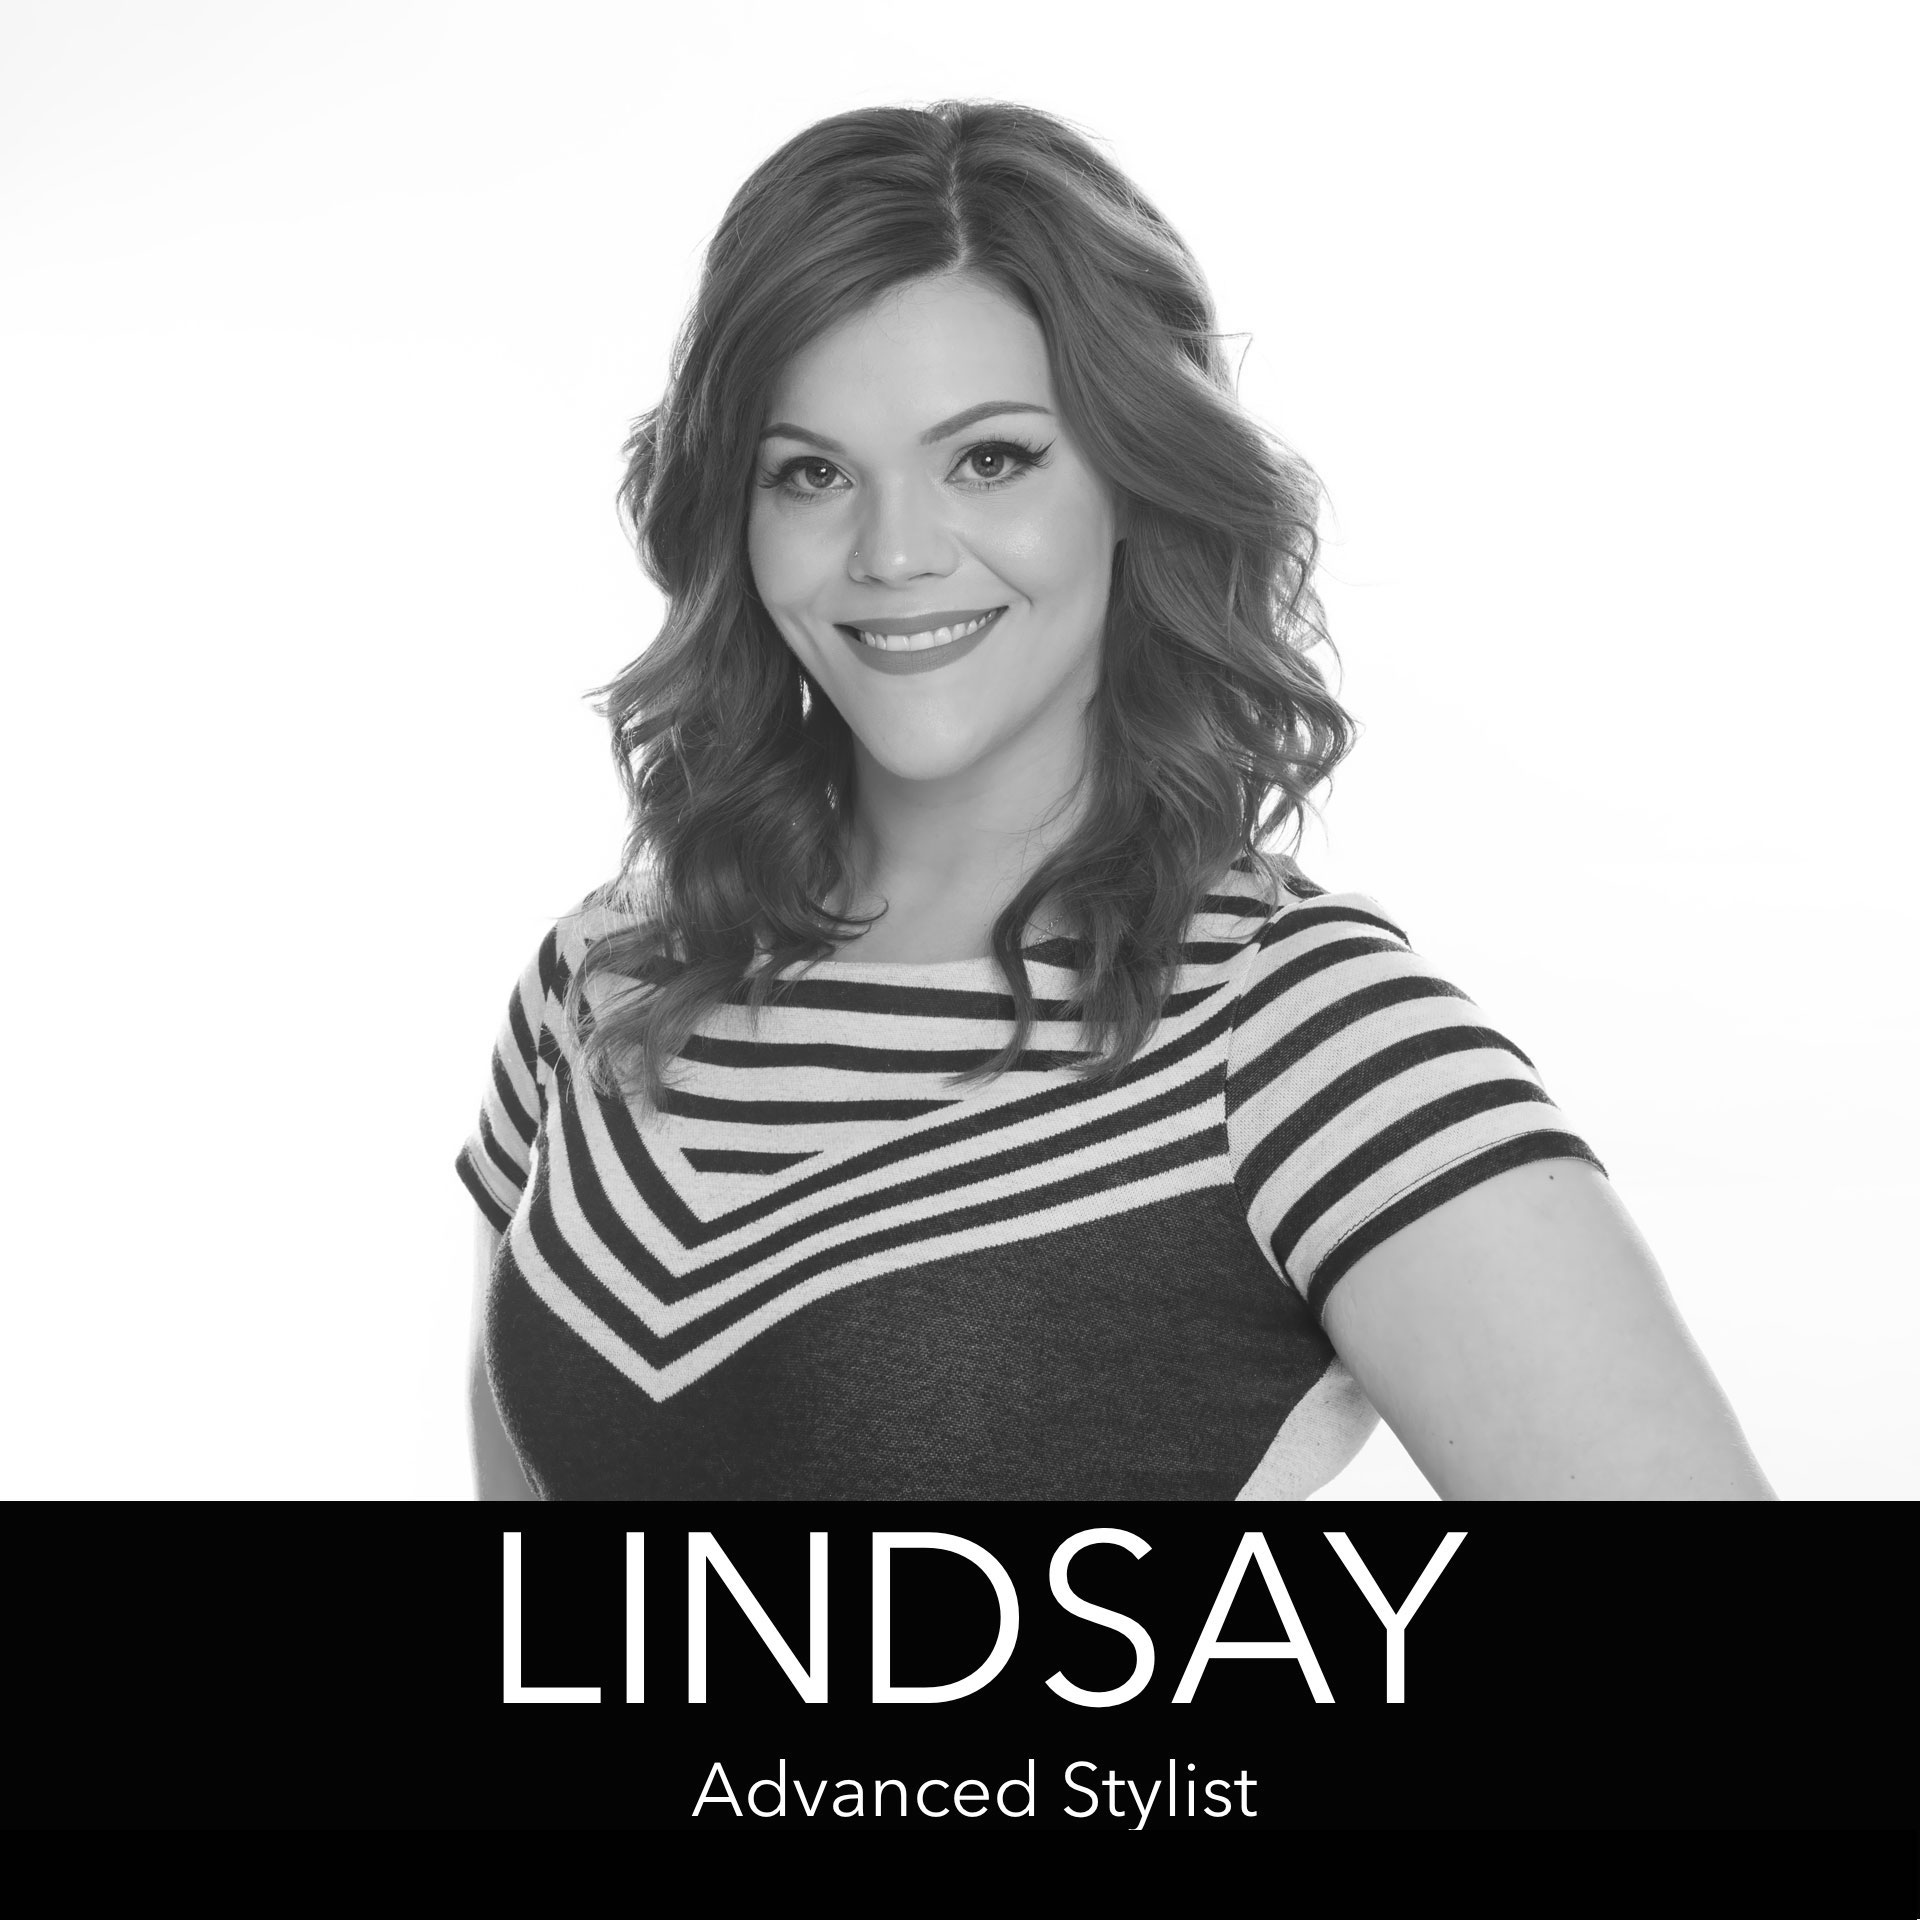 Lindsay aalam the salon for Aalam the salon reviews